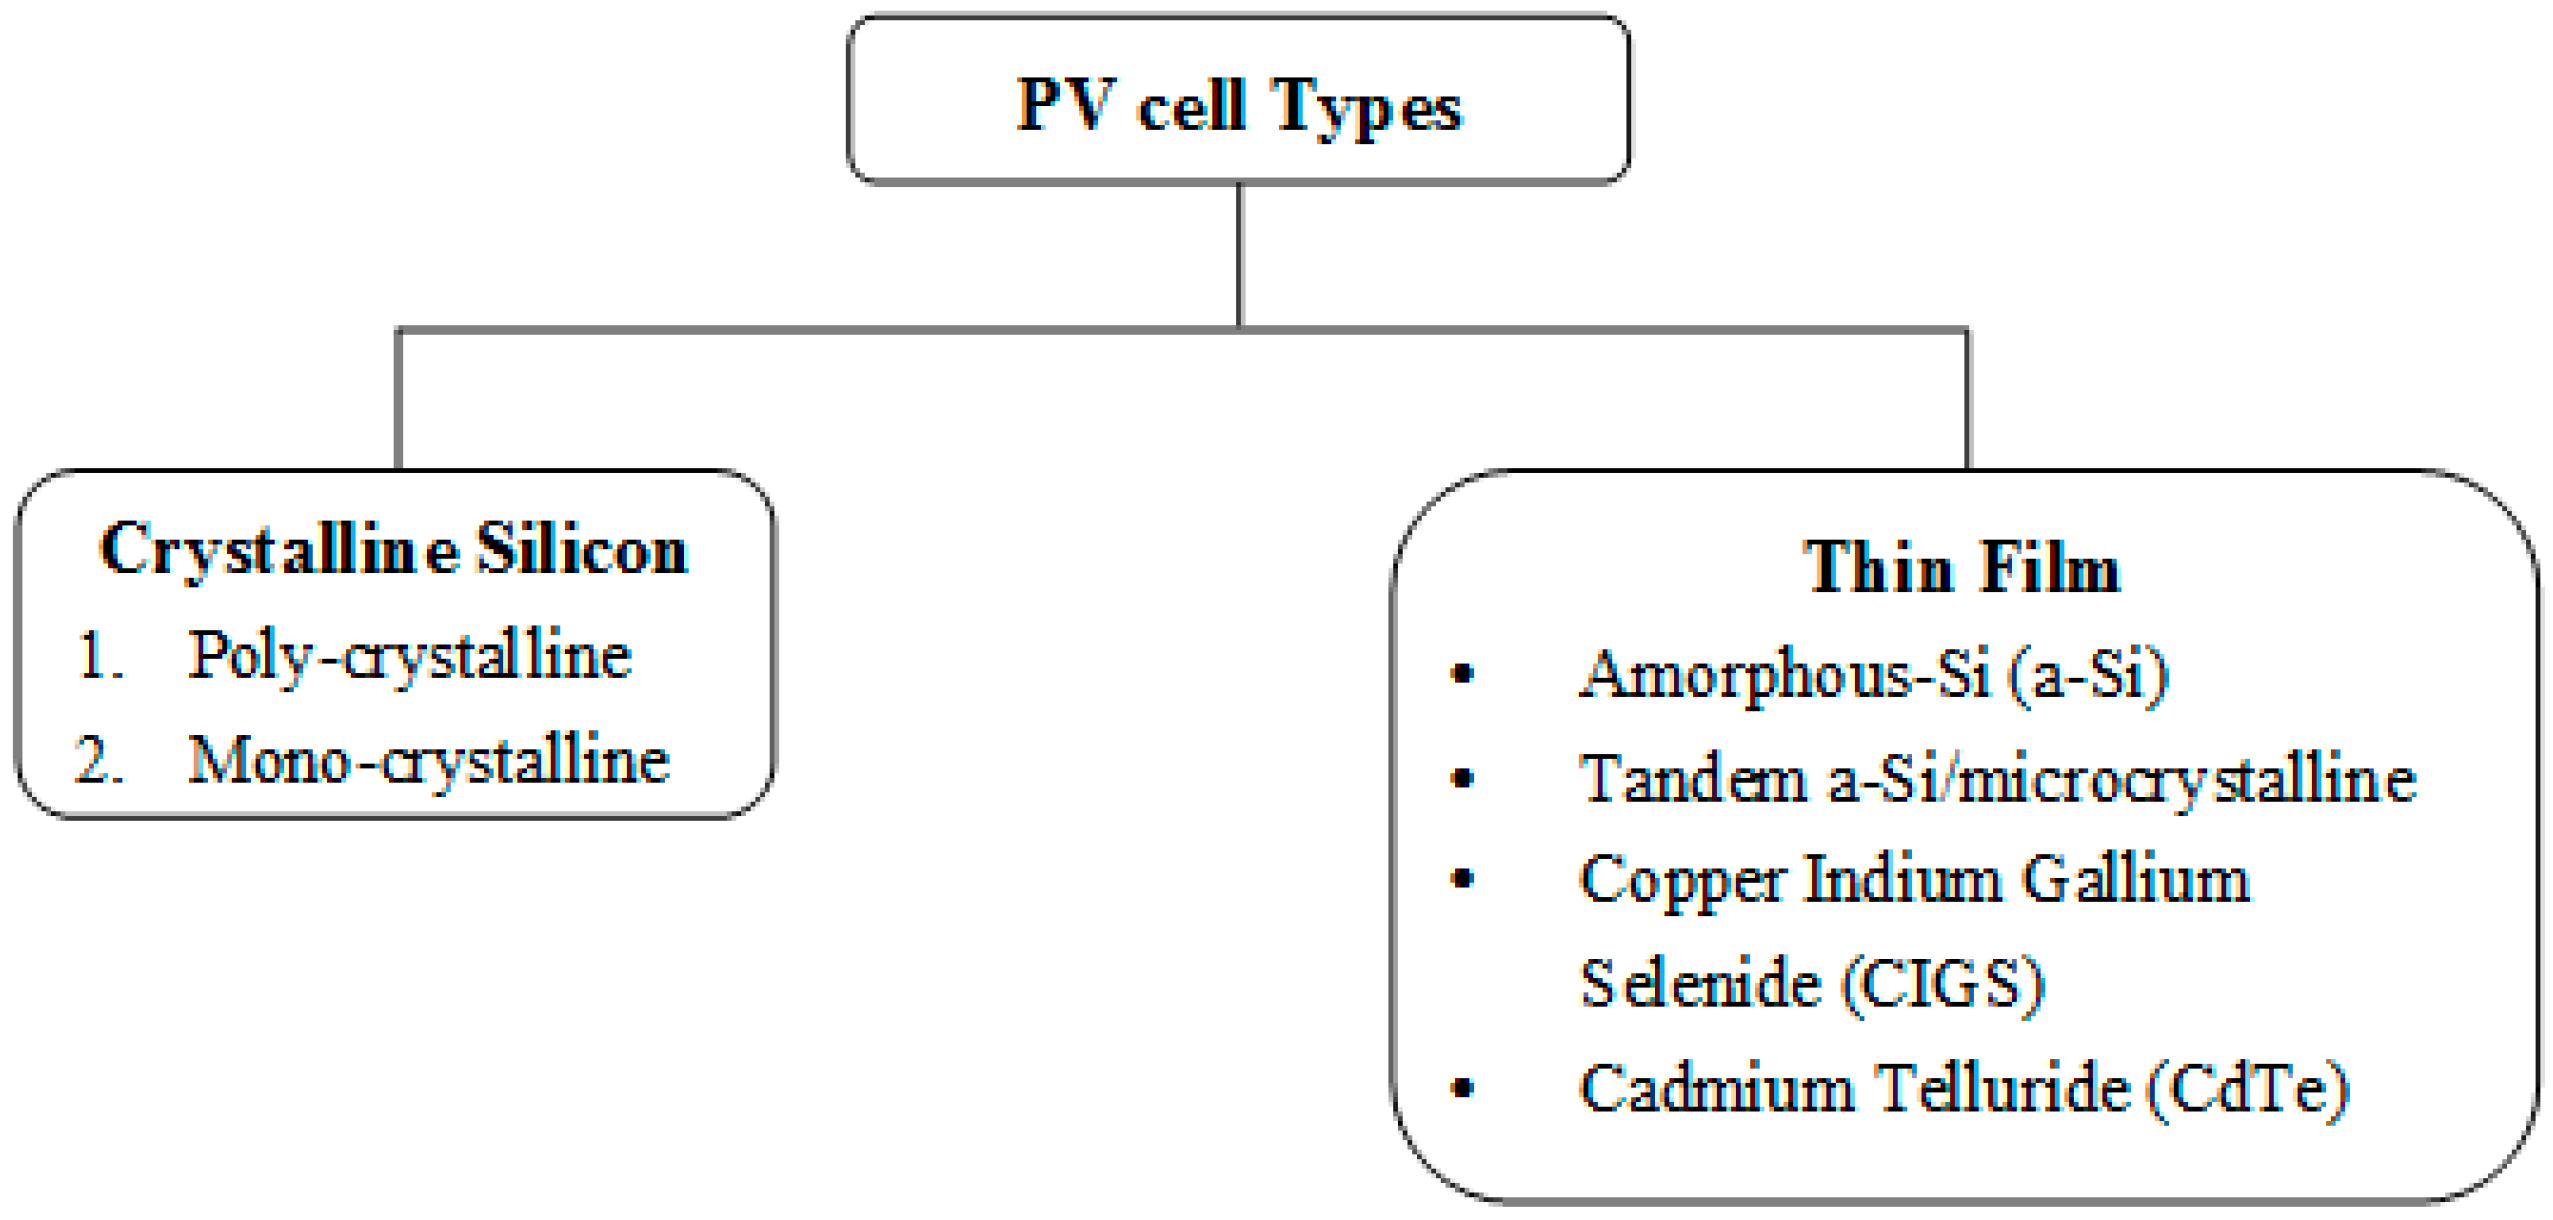 Types Of Pv Cells Pdf